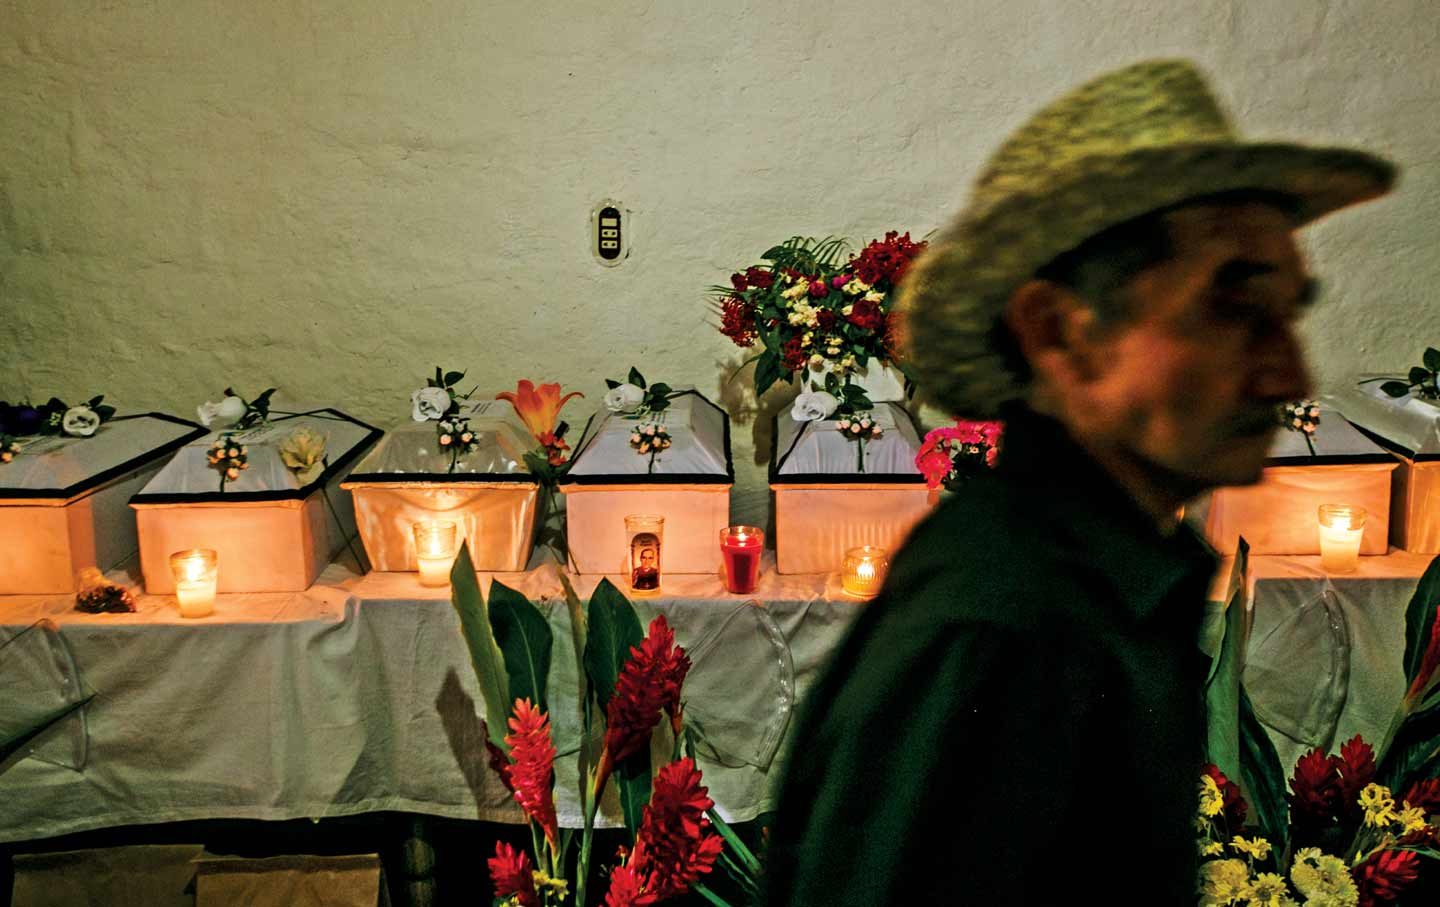 The Massacre of El Mozote: 36 Years of Struggles for Truth and Justice